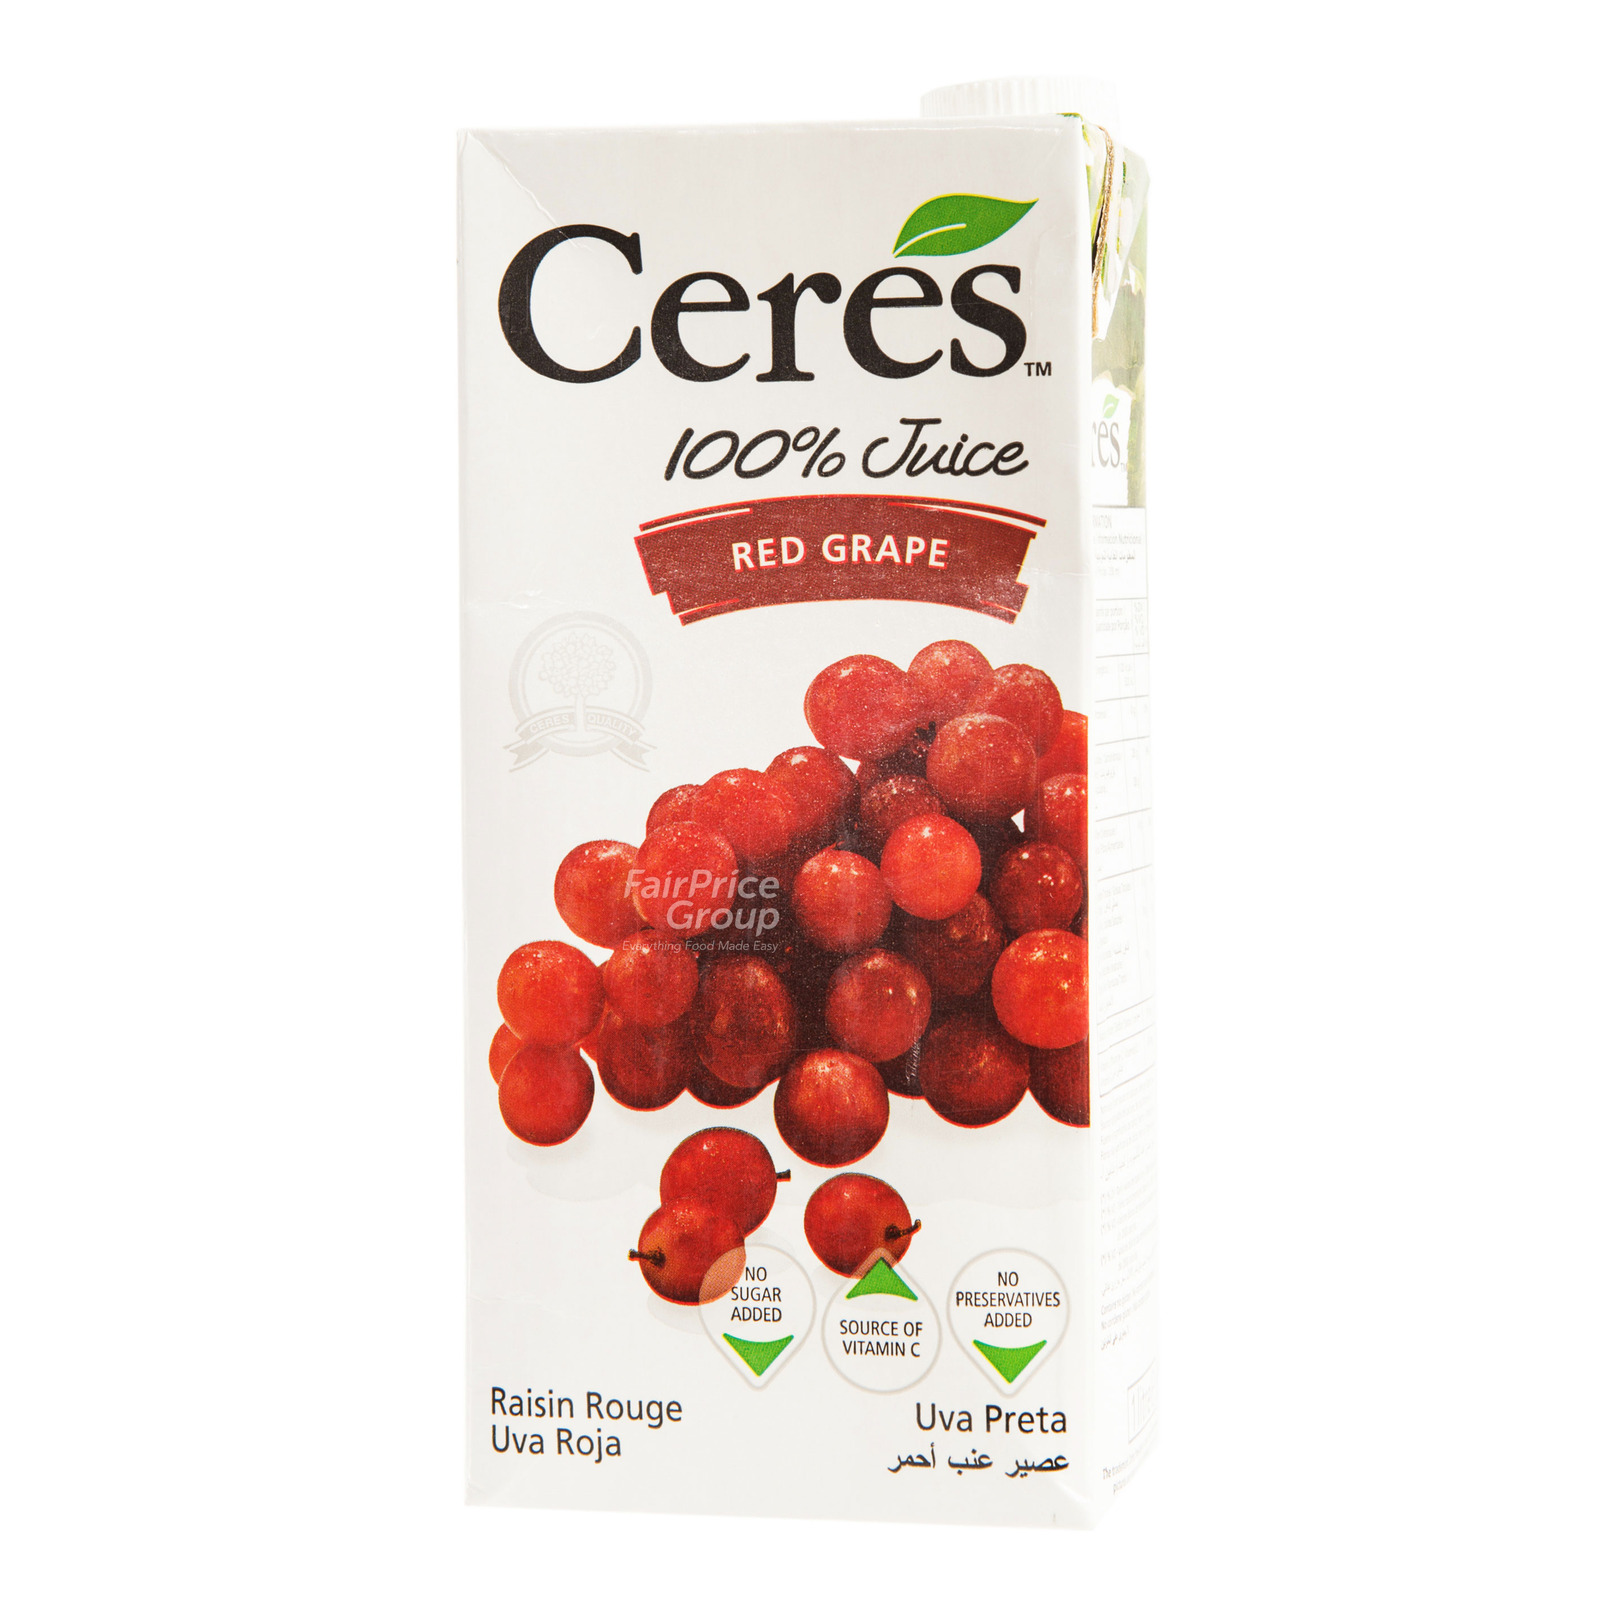 Ceres 100% Juice Packet Drink - Red Grape